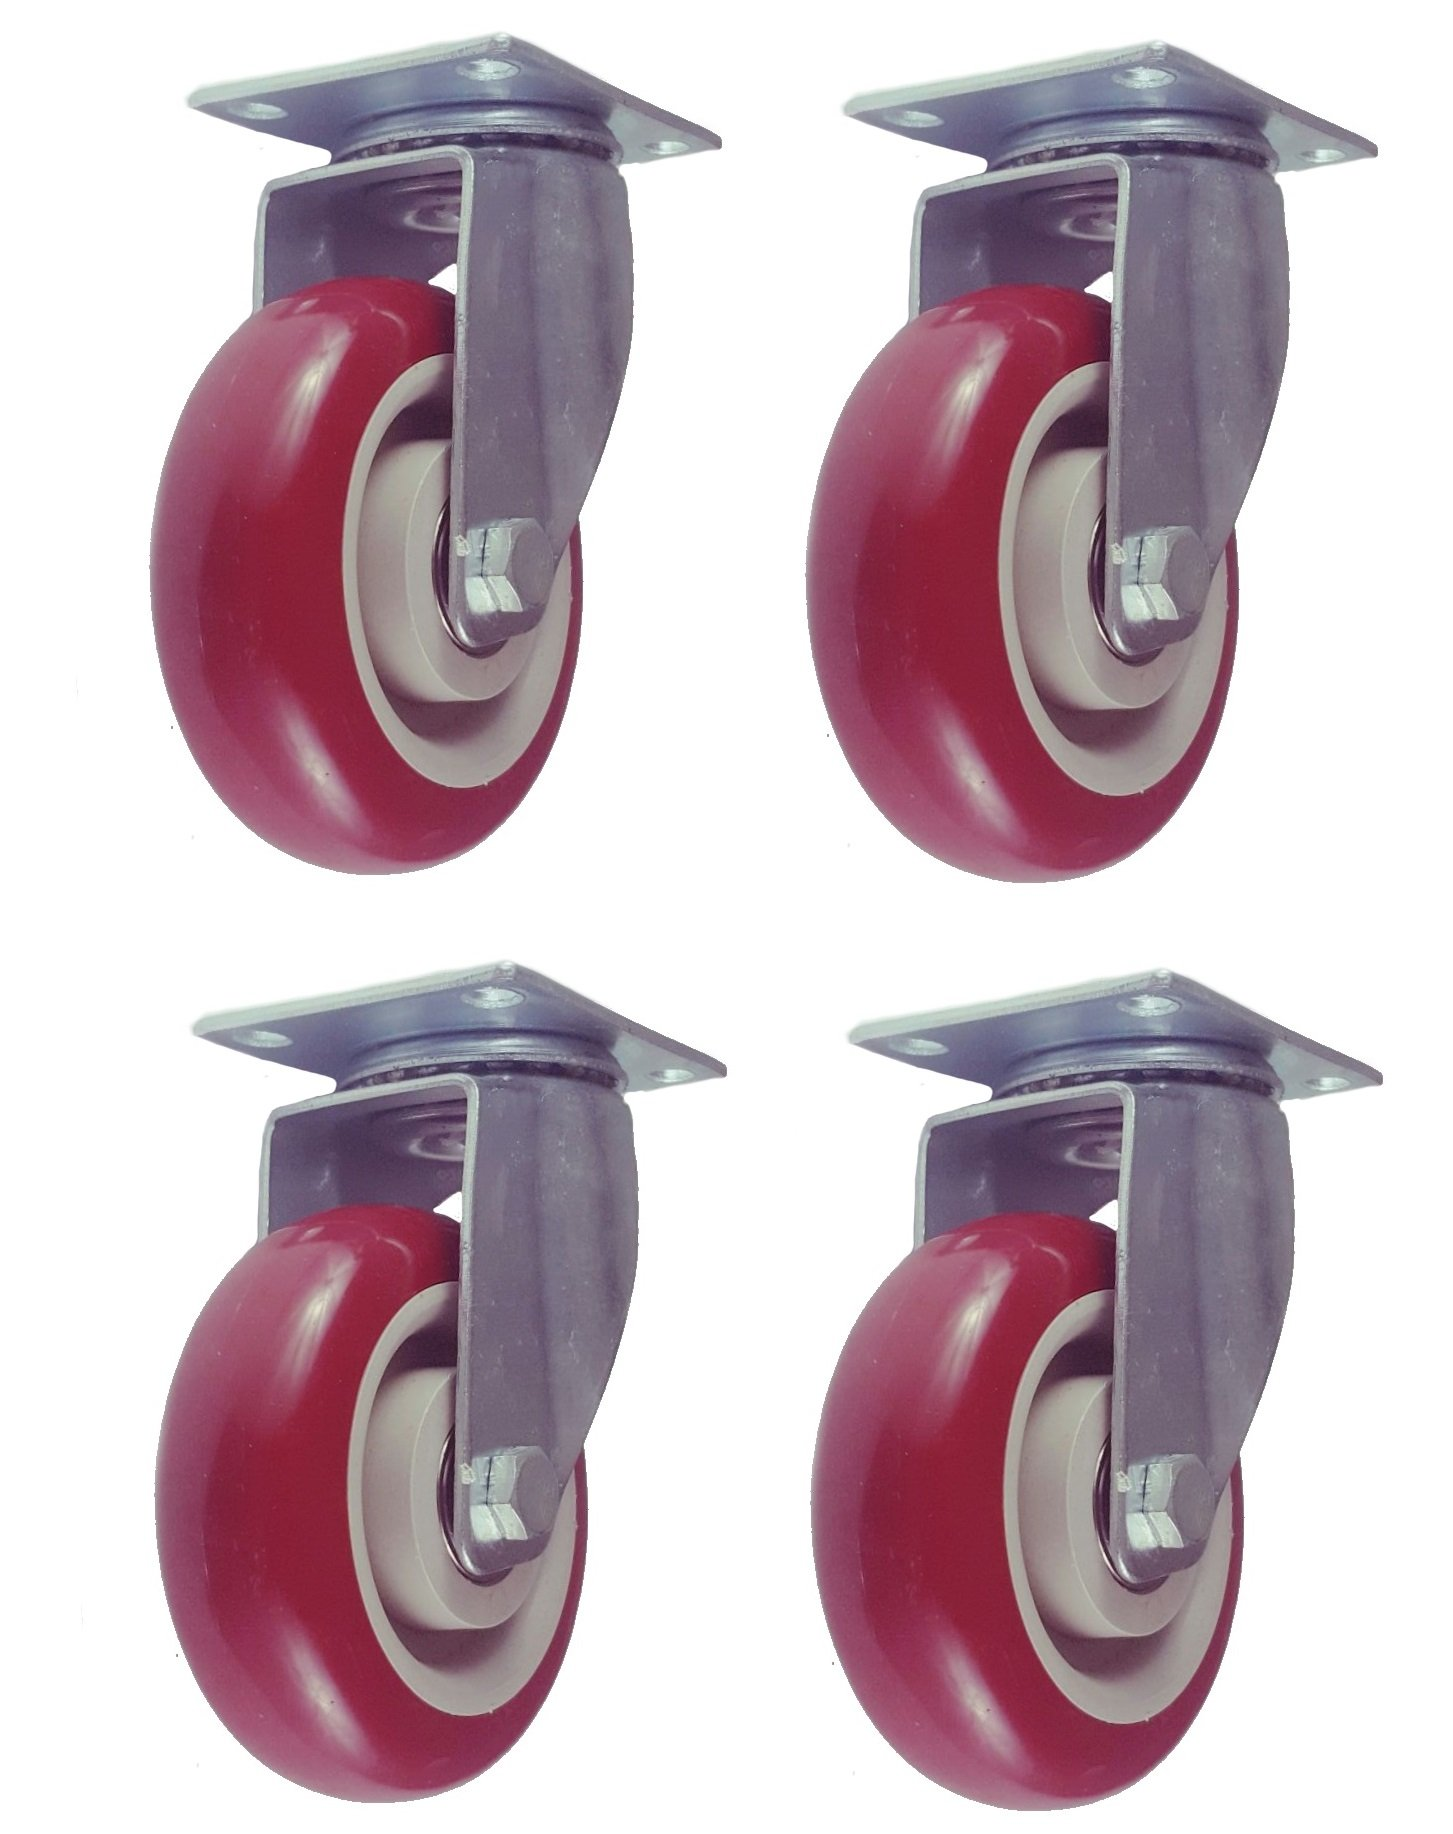 Online Best Service 4 Pack Caster Wheels Swivel Plate Casters On Red Polyurethane Wheels (4 inch Plate) by Online Best Service